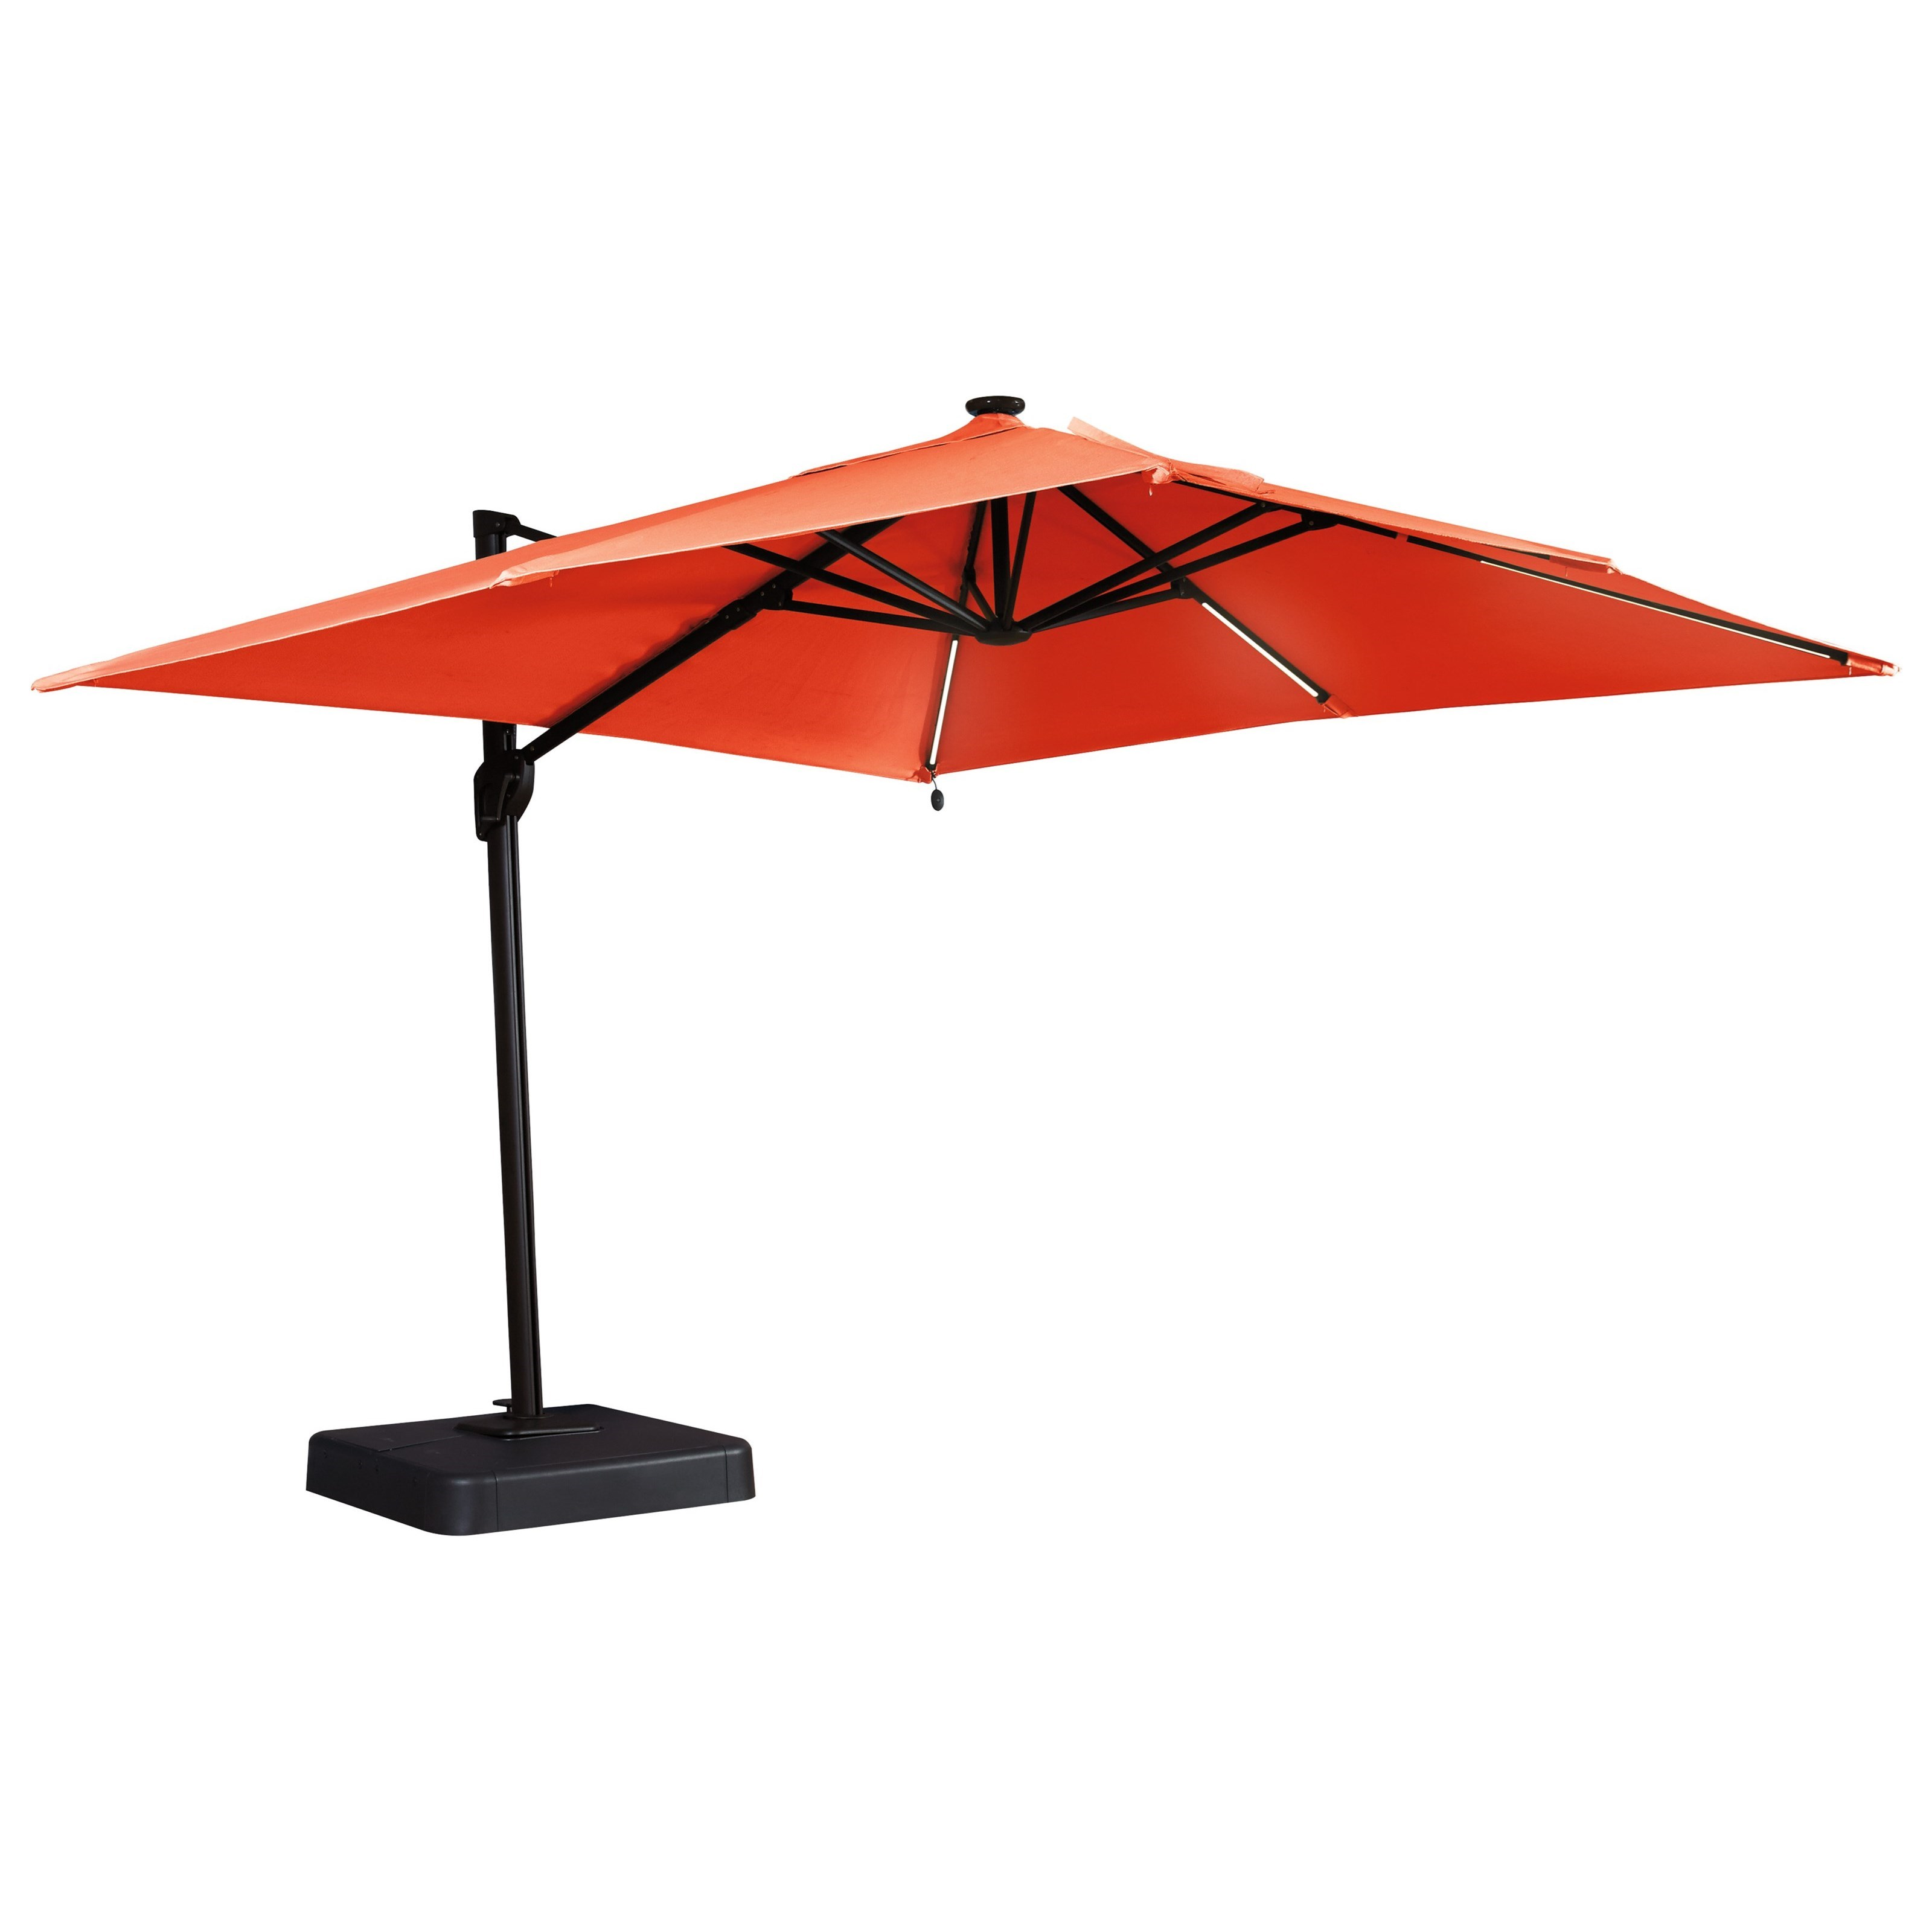 Signature design by ashley oakengrove p017 990 coral large for Architecture upbrella